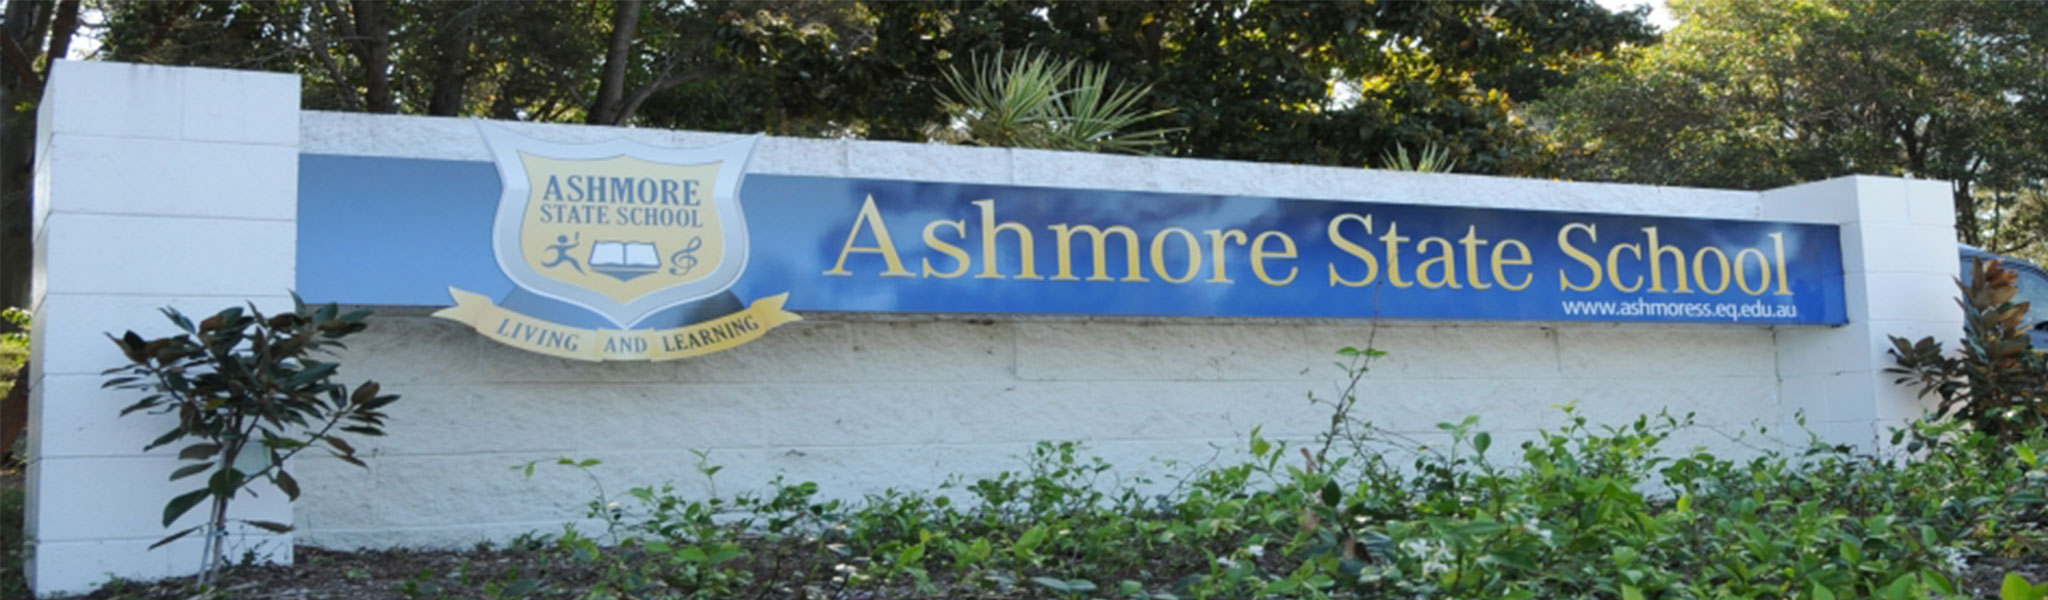 Ashmore State School sign